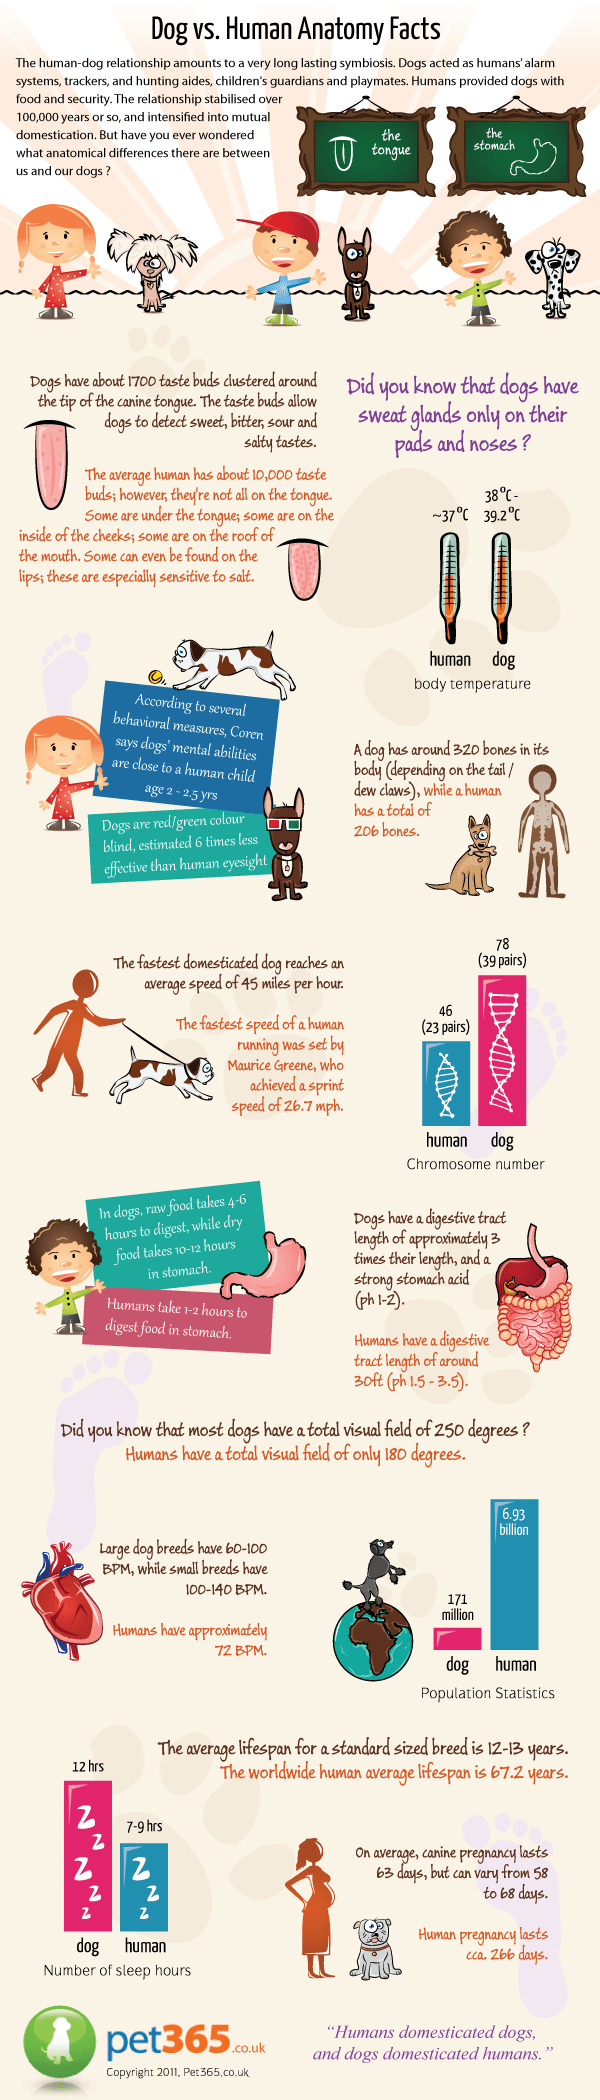 Dog vs. Human Anatomy Facts - Life With Dogs